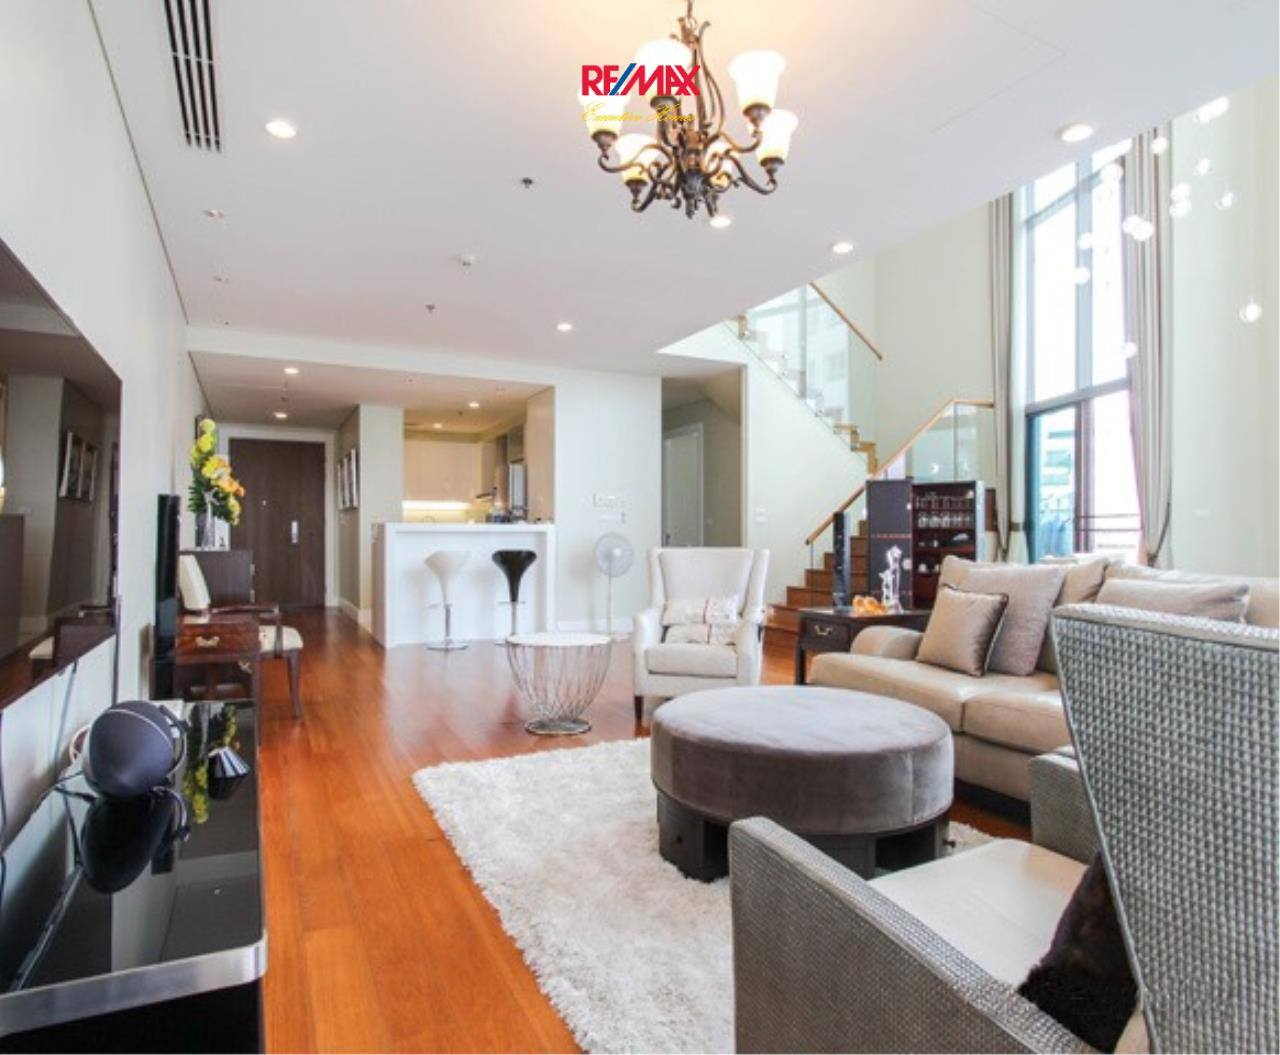 RE/MAX Executive Homes Agency's Stunning 3 Bedroom Duplex for Rent and Sale The Bright 24 2